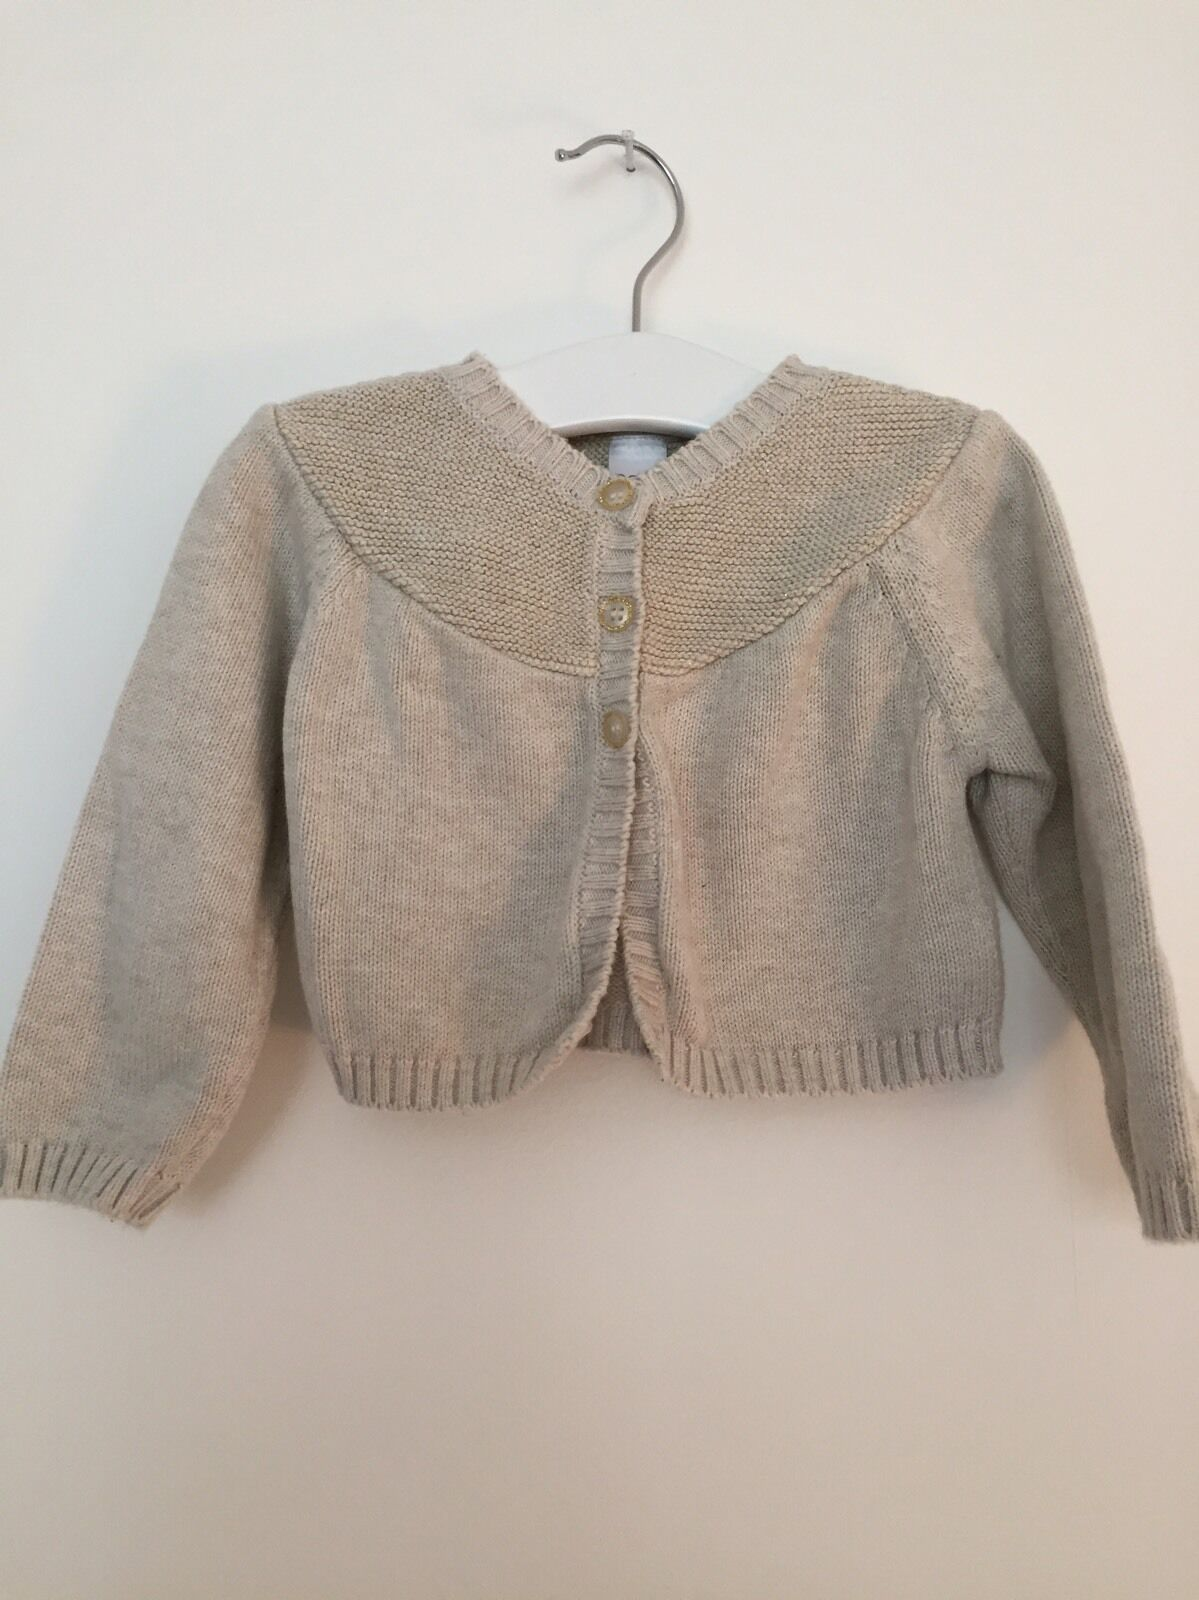 Older Girls Younger Girls knitwear - Next Ireland. International Shipping And Returns Available. Buy Now!